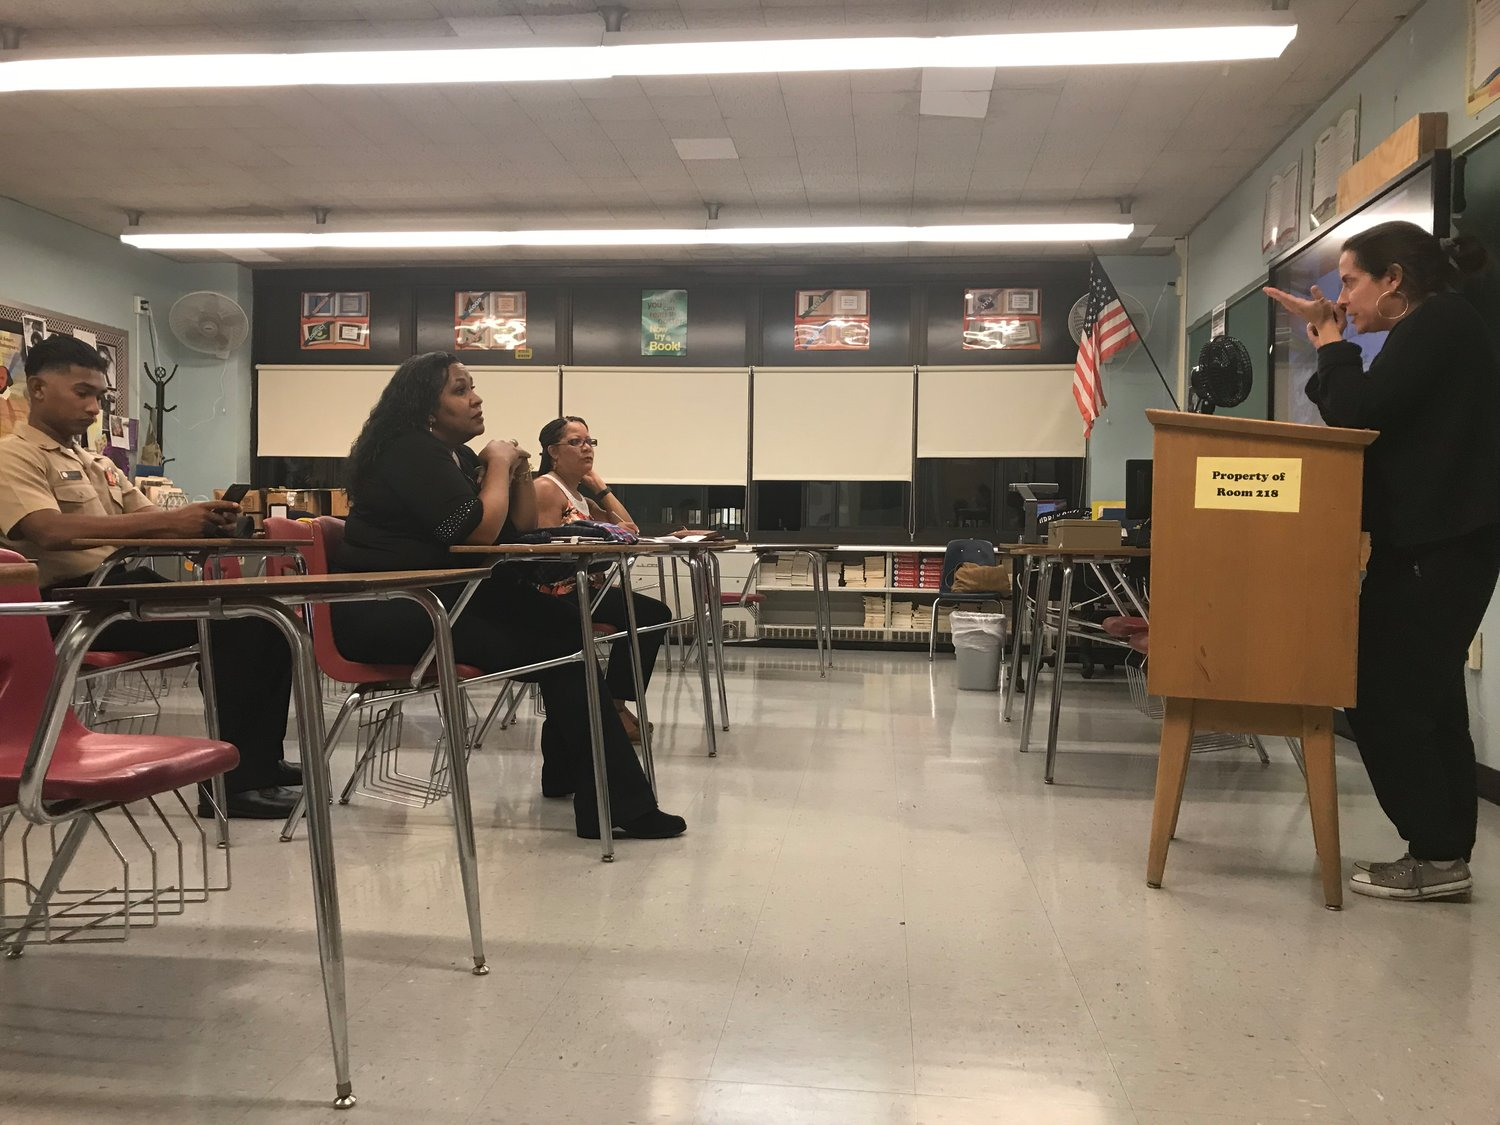 Hispanic parents sat at their children's desks while meeting with Pam Yodowitz, an 11th grade English teacher at Freeport High.